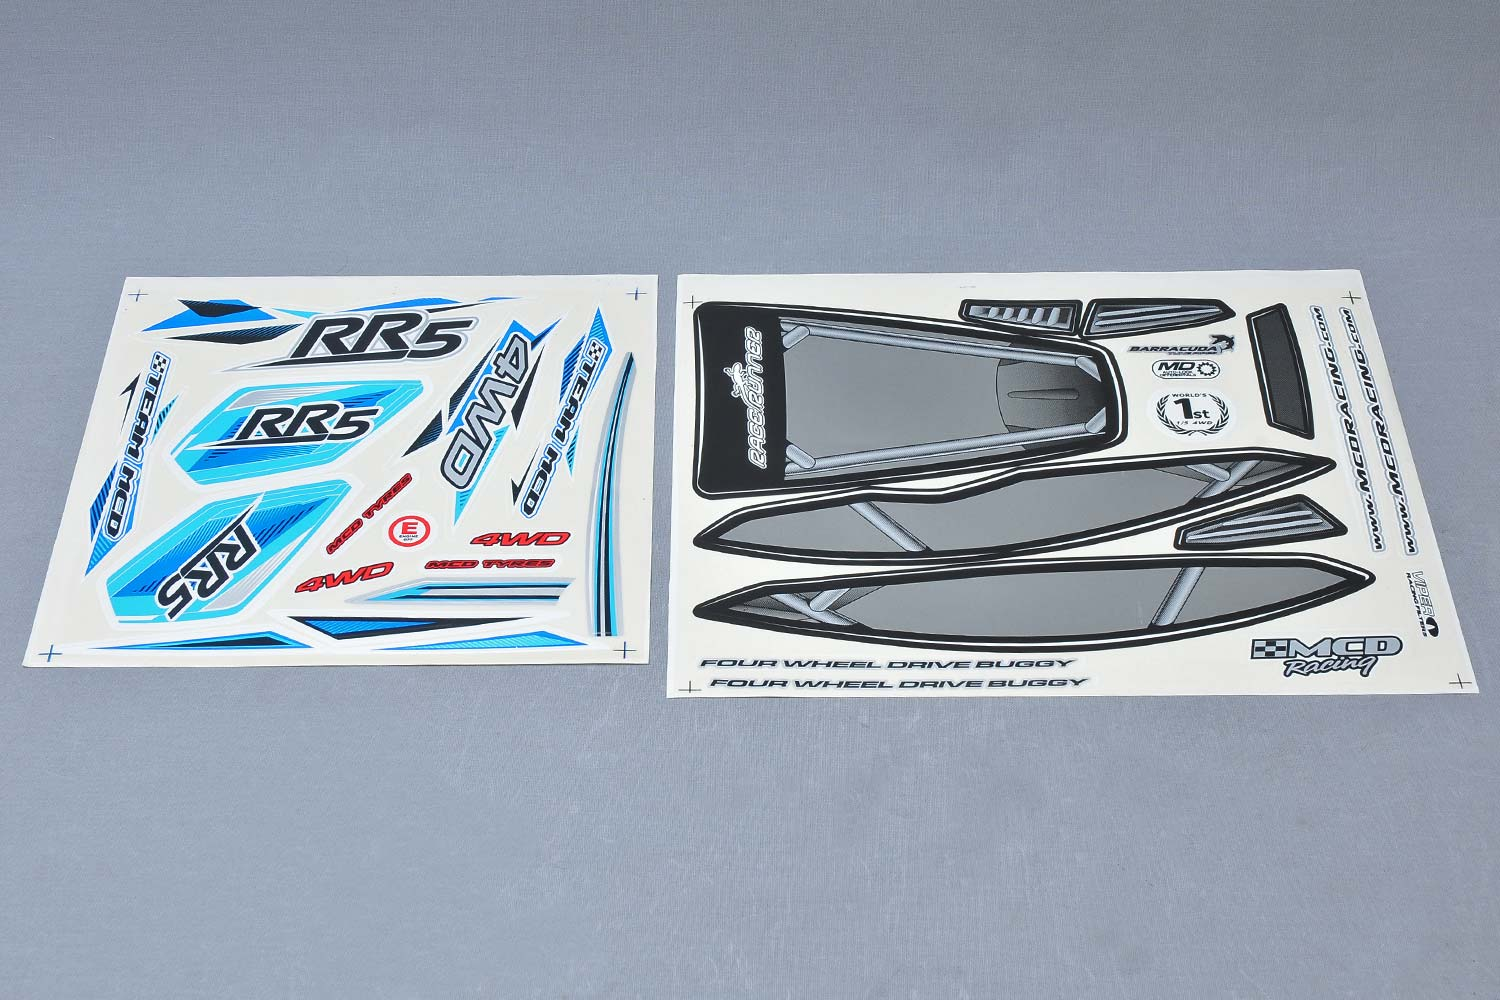 MCD Racing RR5 Body Shell Decal / Sticker Set. 1pc